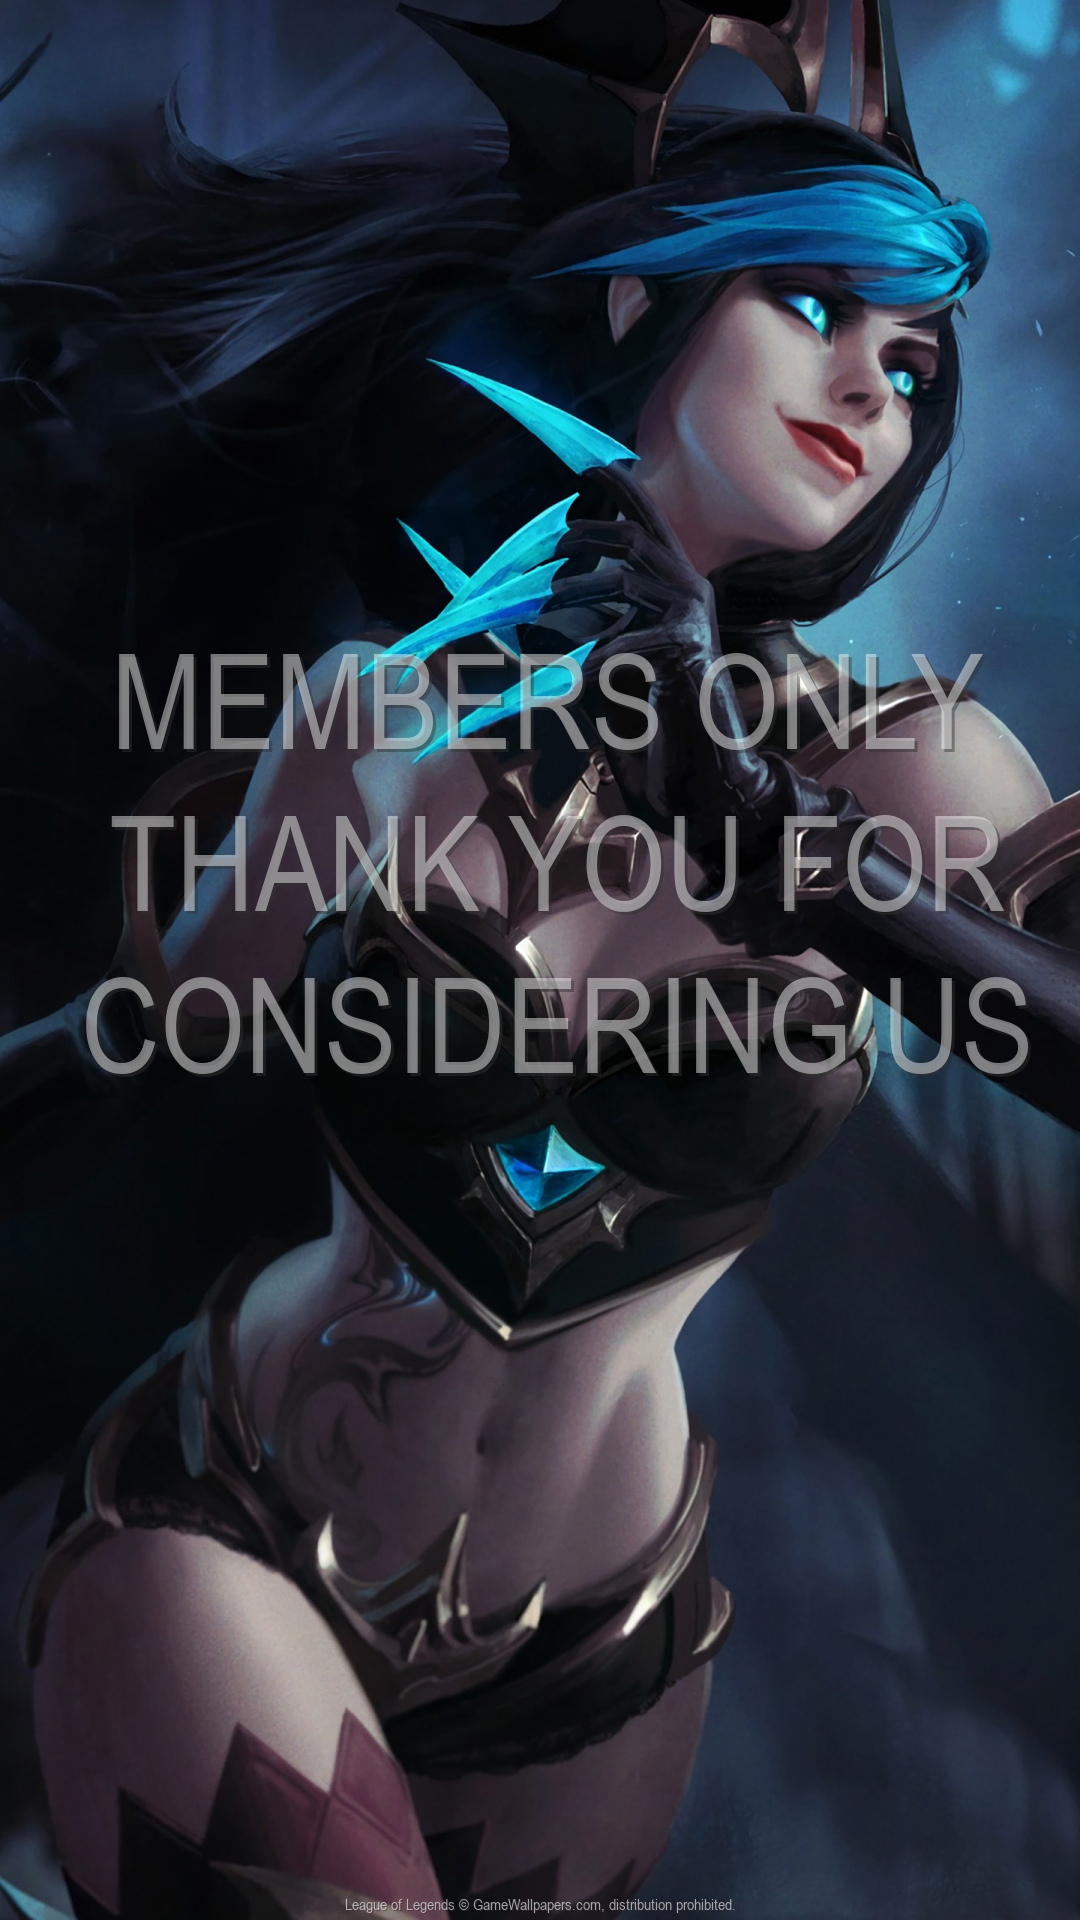 League of Legends 1920x1080 Mobile wallpaper or background 80